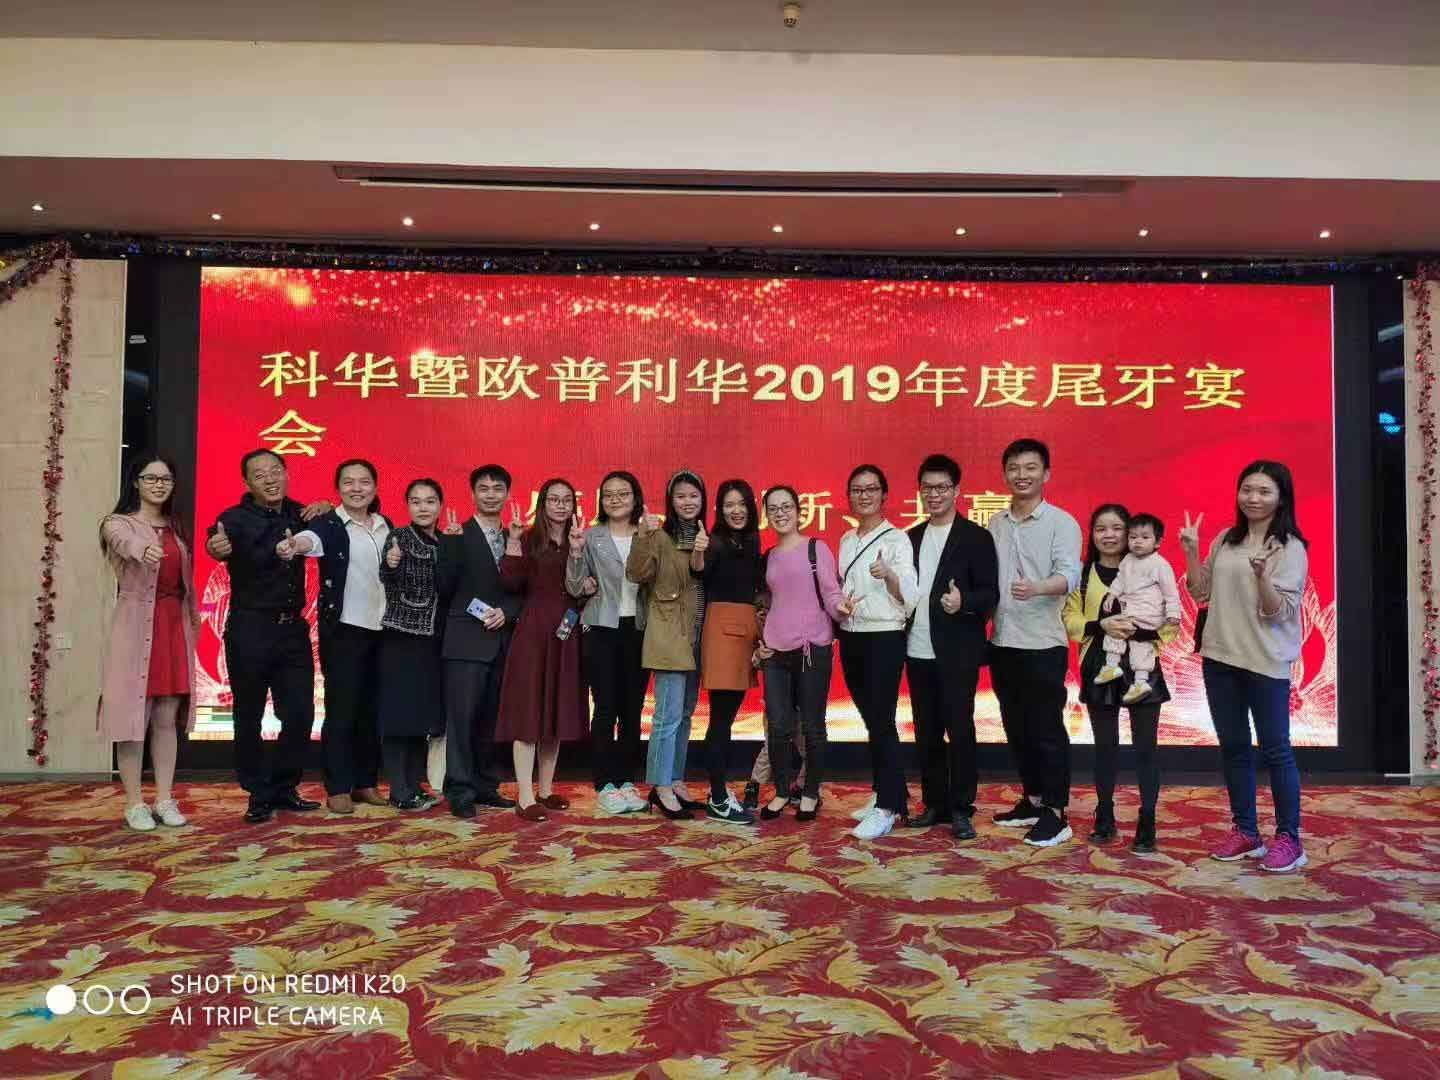 Forwa High Precision Plastic Gearbox Manufacturer Annual Party